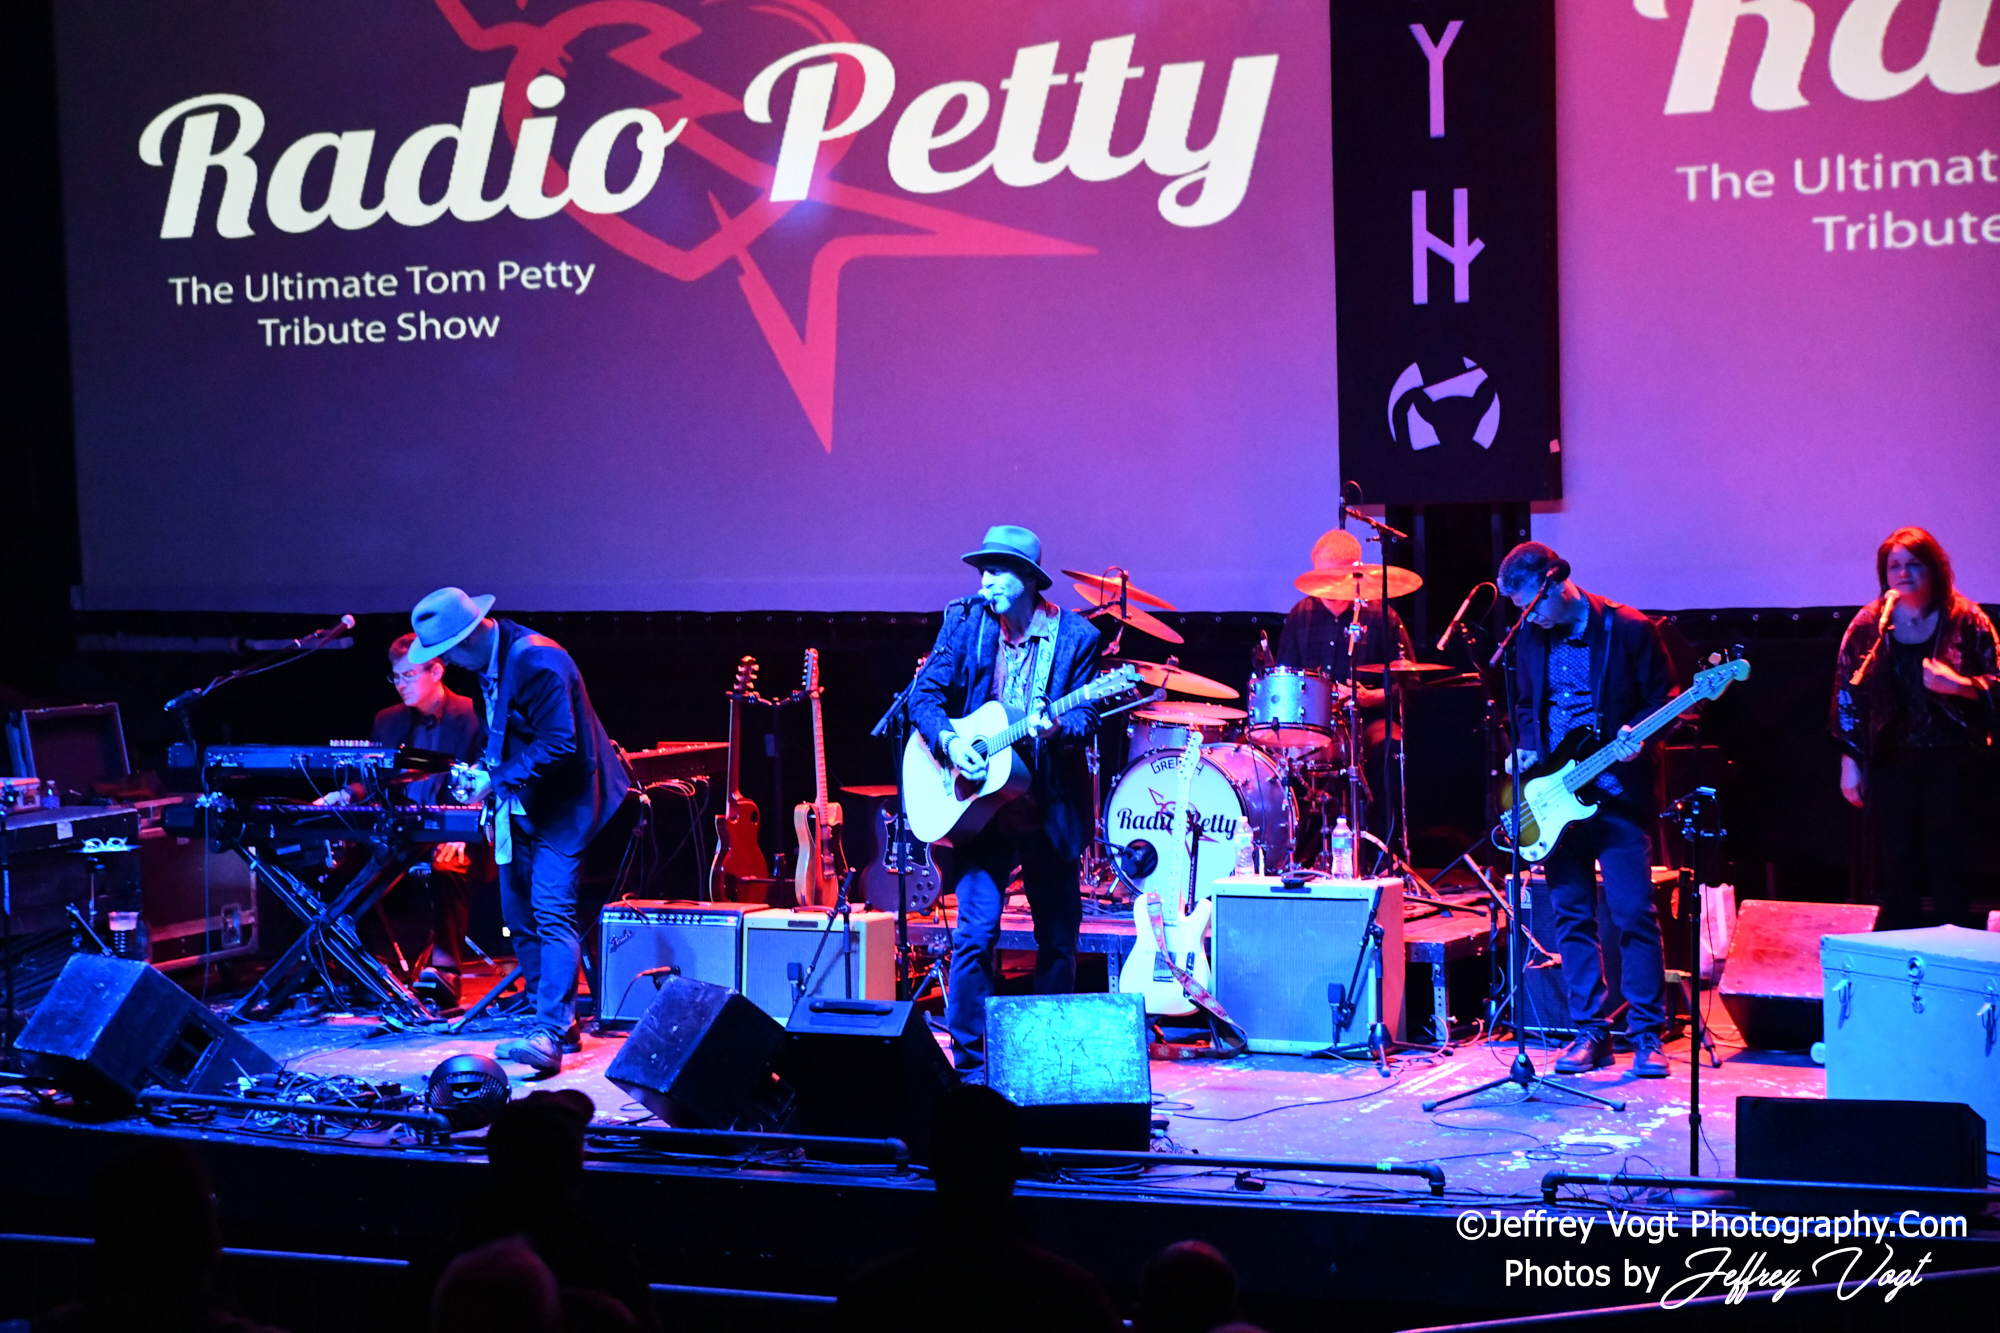 Concerts; Bands; Radio Petty; Cameras; Nikon 200-400 F4; Nikon Camera; Nikon D850; Nikon DSLR; Tamron 24-75 F2.8; Tamron 70-200 F2.8; 2019; 12/27/2019; Tom Petty; The Ultimate Tom Petty Tribute; Radio Petty - The Ultimate Tom Petty Tribute; Acoustical; Alternative Rock; Band; Band Photo; Band Photographer; Band Photography; Band Photos; Bass Guitarist; Bill Gallacher; Bob Docherty; Classic Rock; Concert; Concert Photo; Concert Photographer; Concert Photography; Concert Photos; Cover Bands; Cover Songs; Dave Della Fera; DMV Music; DMV Music Photographer; DMV Music Photography; DMV Music Photos; Doug Edwards; Drummer; Genres; Gig; Gig Photographer; Gig Photography; Gig Photos; Jeffrey Vogt; Jeffrey Vogt Photography; Jeffrey Vogt Photos; Larry Hart; Lead Guitarist; Leesburg; Leesburg Virginia; Live Music; Live Music Photographer; Live Music Photography; Live Music Photos; Locations; Music; Musicians; On Stage; On Stage Photographer; On Stage Photography; On Stage Photos; Photography by Jeffrey Vogt; Photos; Photos by Jeffrey Vogt; Pit Photographer; Pit Photography; Pit Photos; Rhythm Guitarist; Rock; Rock and Roll; Tally Ho; Tally Ho Theater; Tony Matos; Tour; Tribute; Tribute Band; Tributes; Venues; Virginia; www.jeffreyvogtphotography.com;